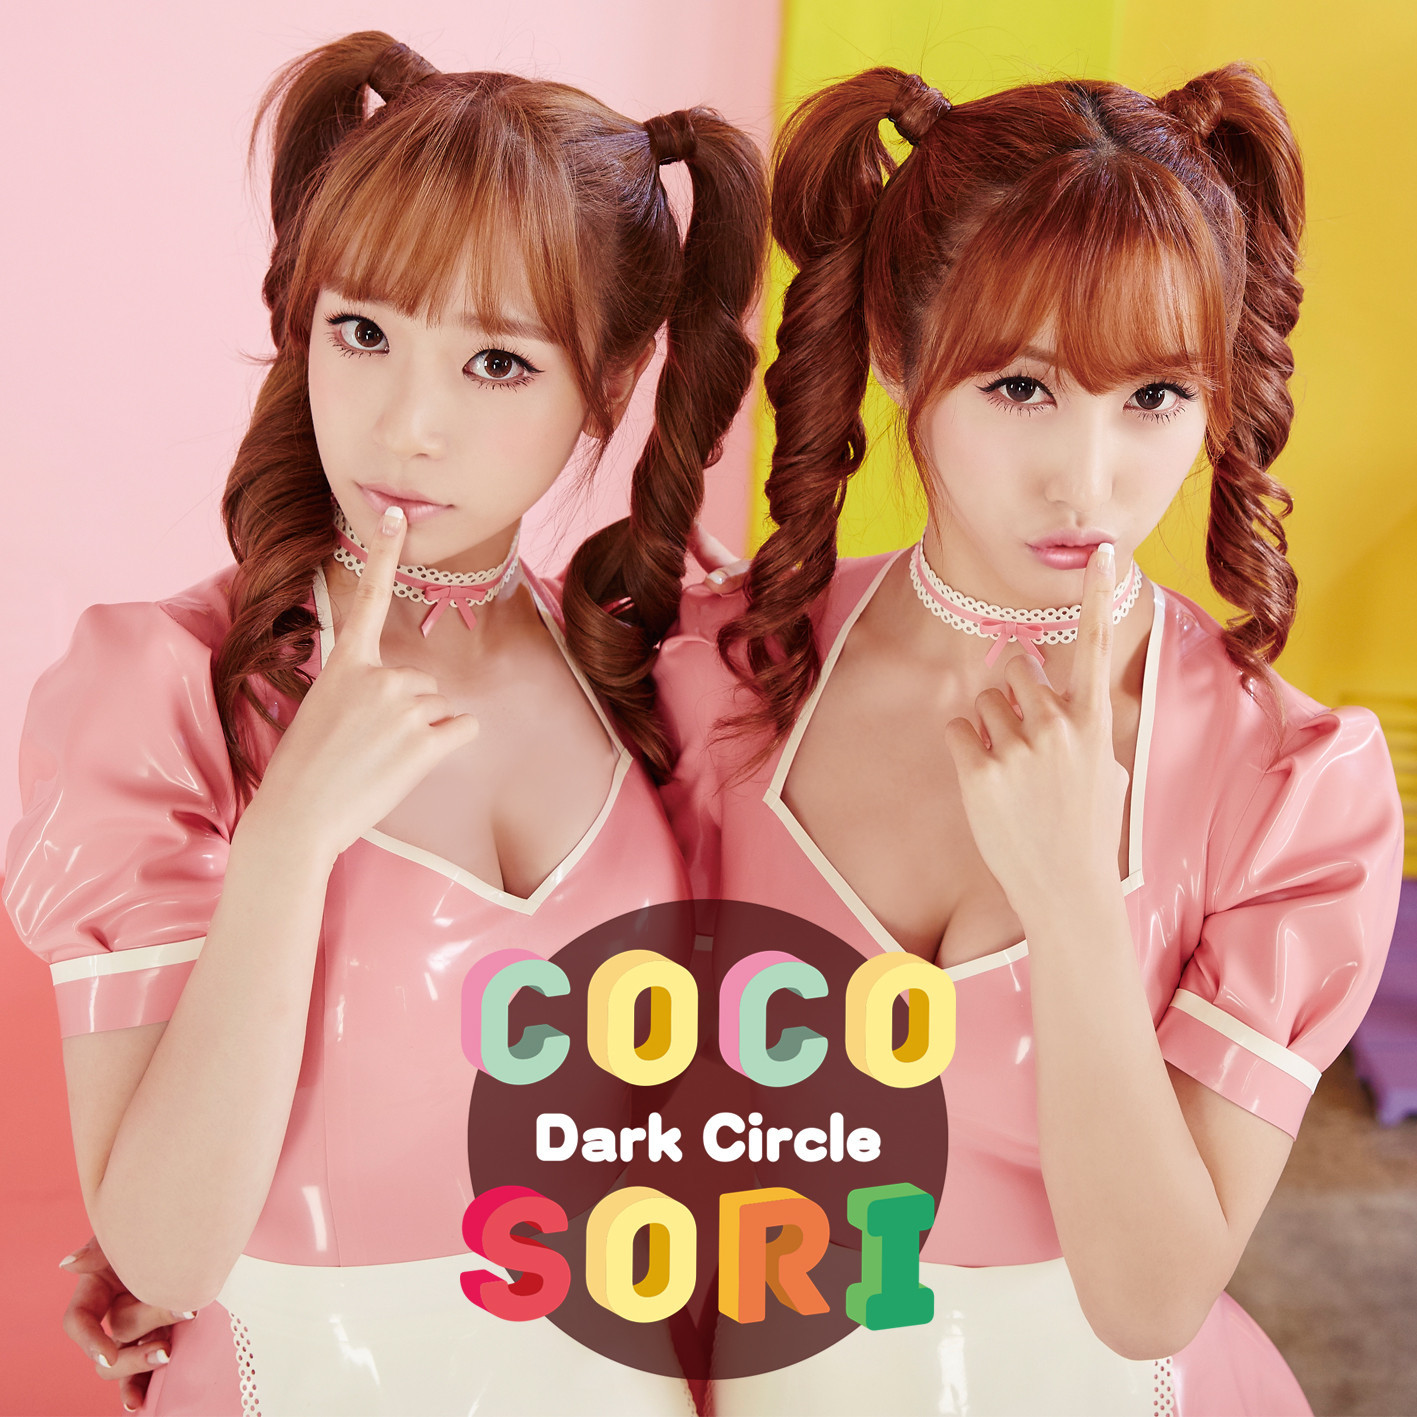 20160228.16 CocoSori - Dark Circle cover.jpg